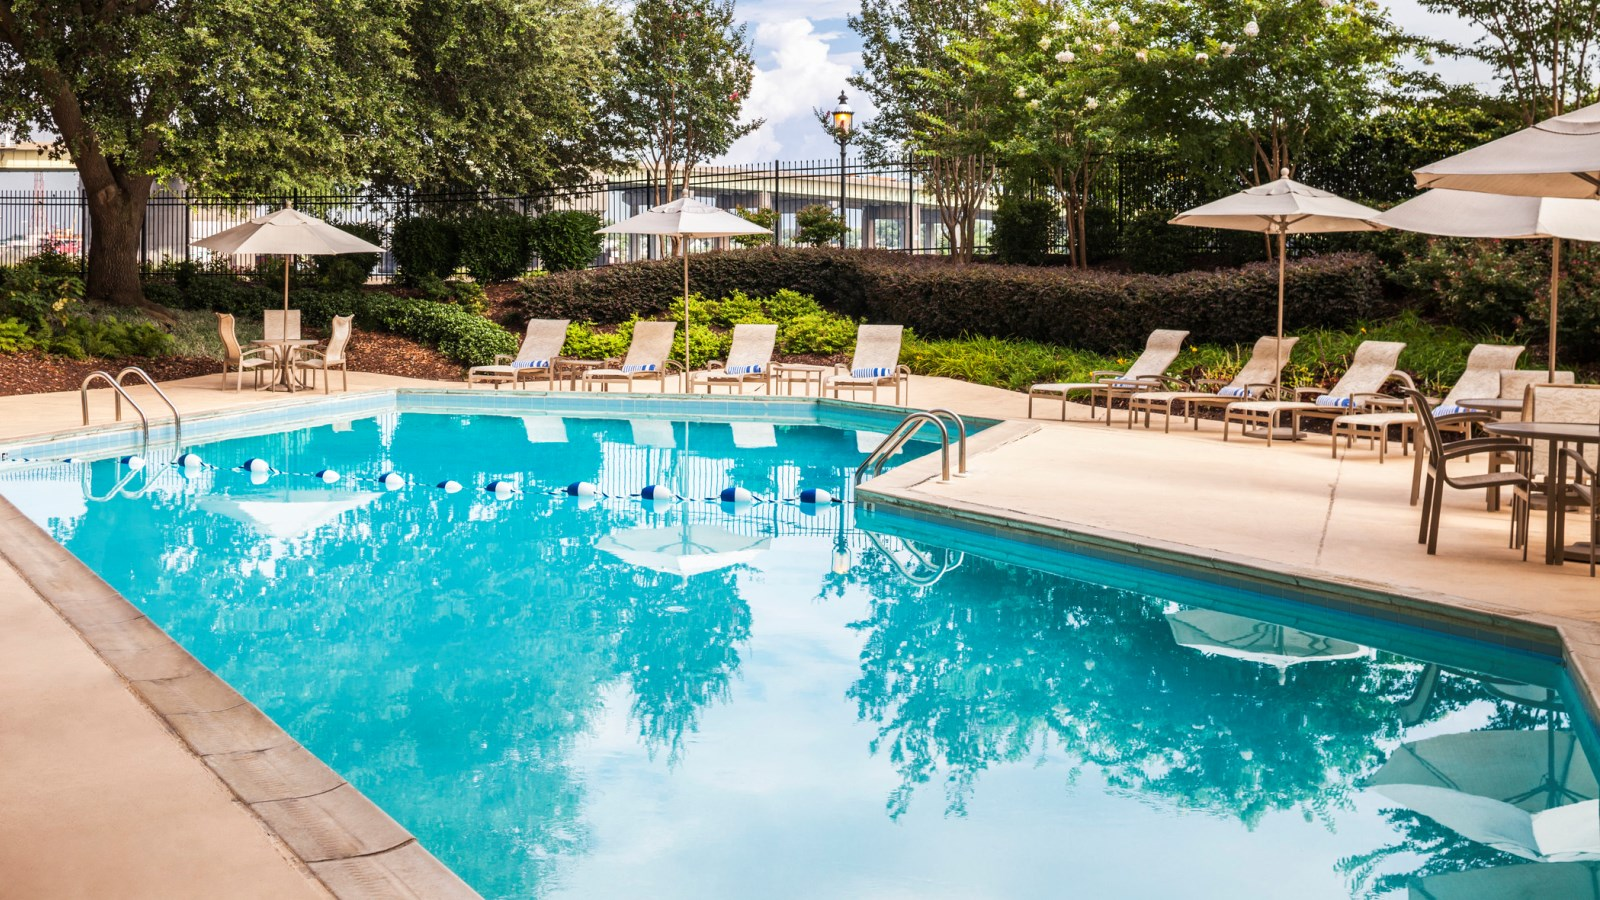 Outdoor pool at Sheraton Norfolk Waterside Hotel